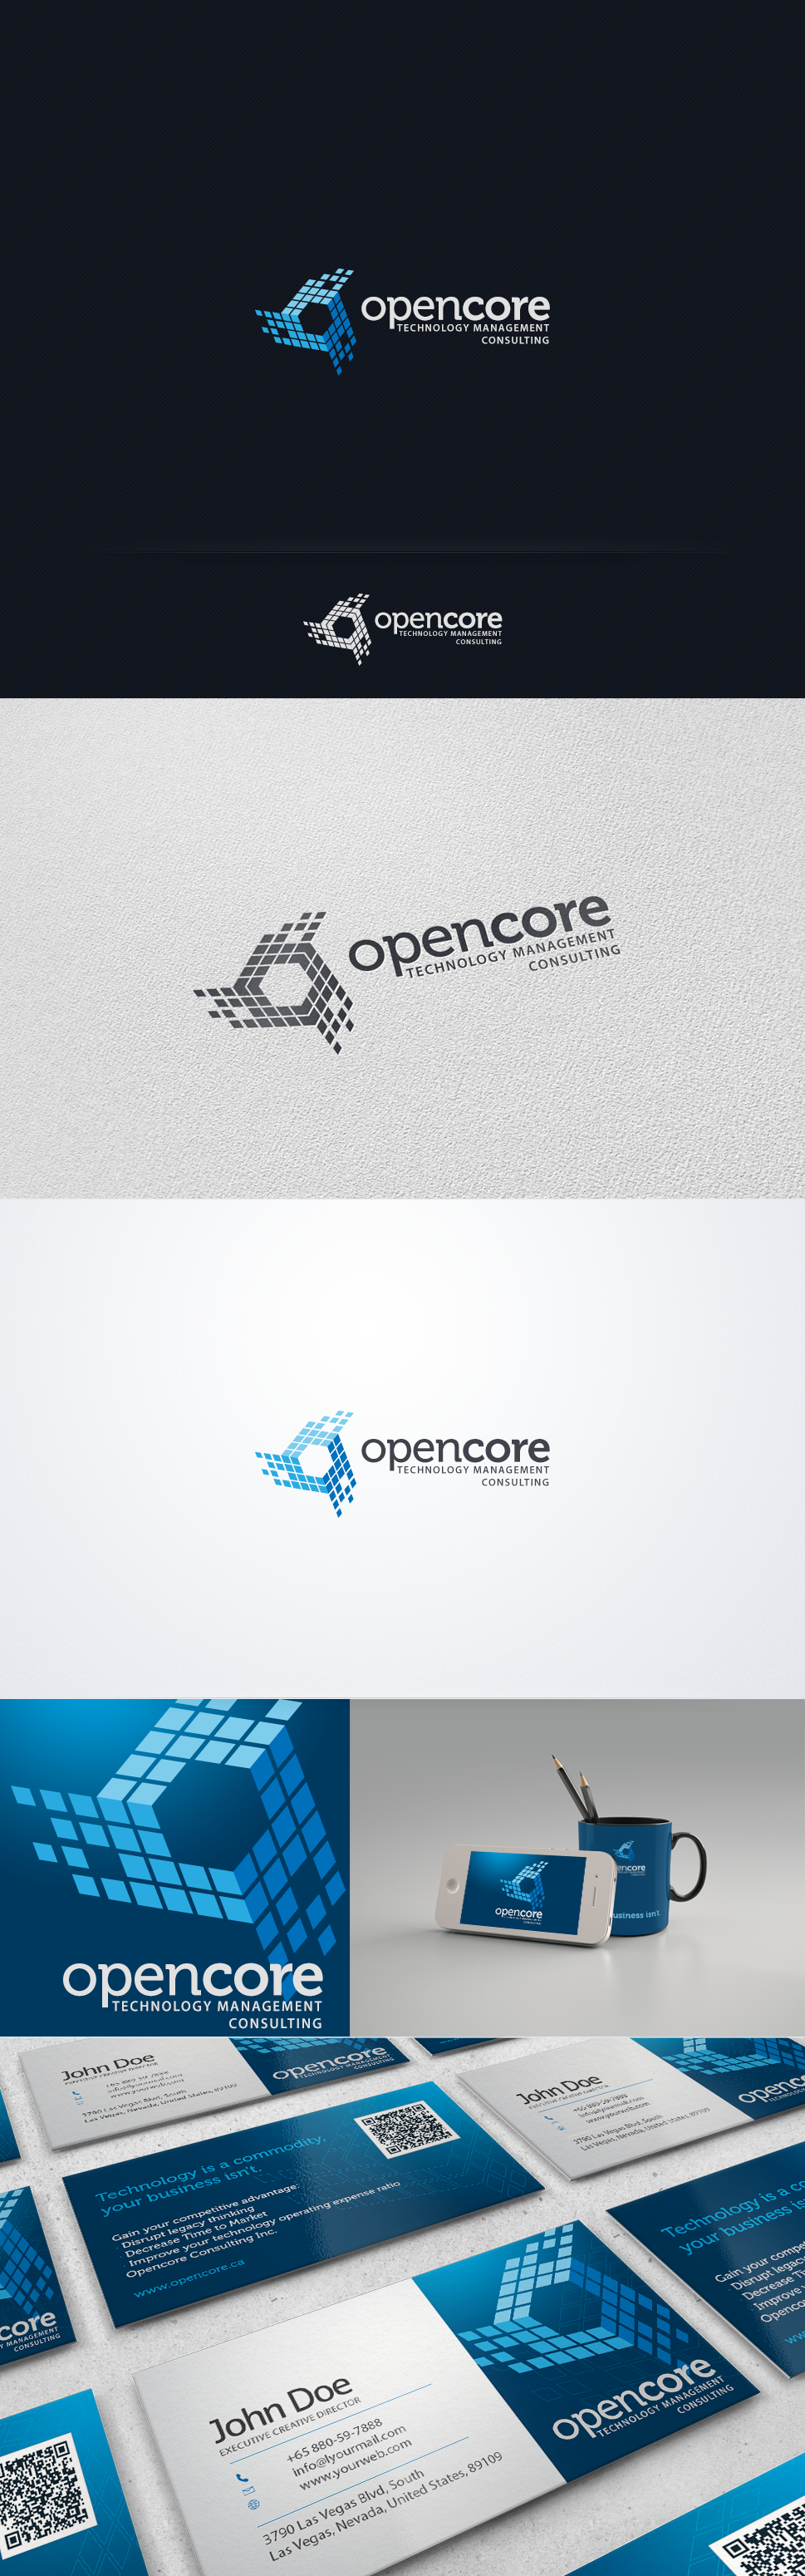 New logo and business card wanted for Opencore